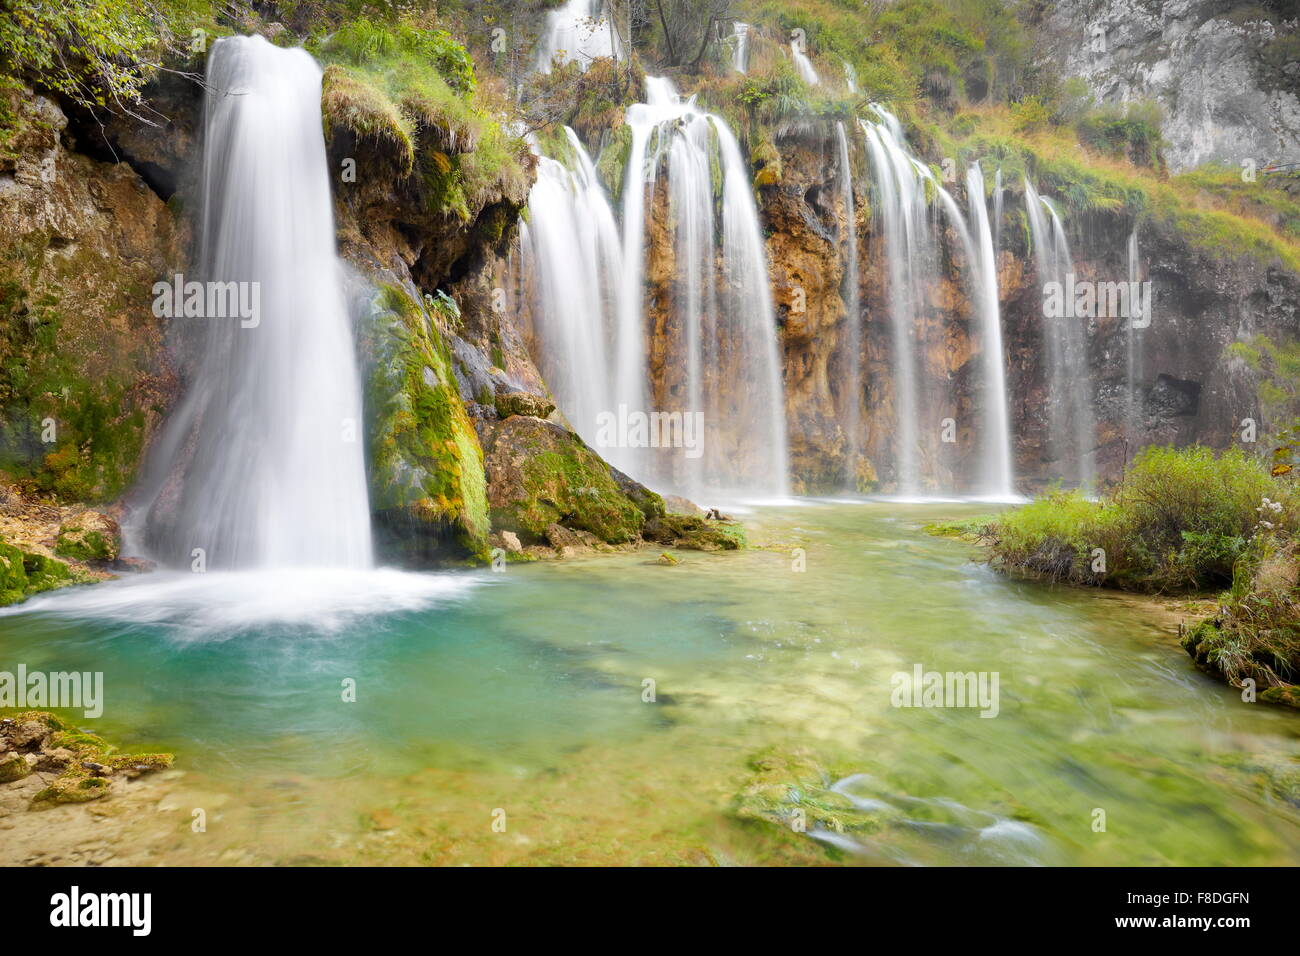 Cascades dans le parc national des Lacs de Plitvice, Croatie, l'UNESCO Photo Stock